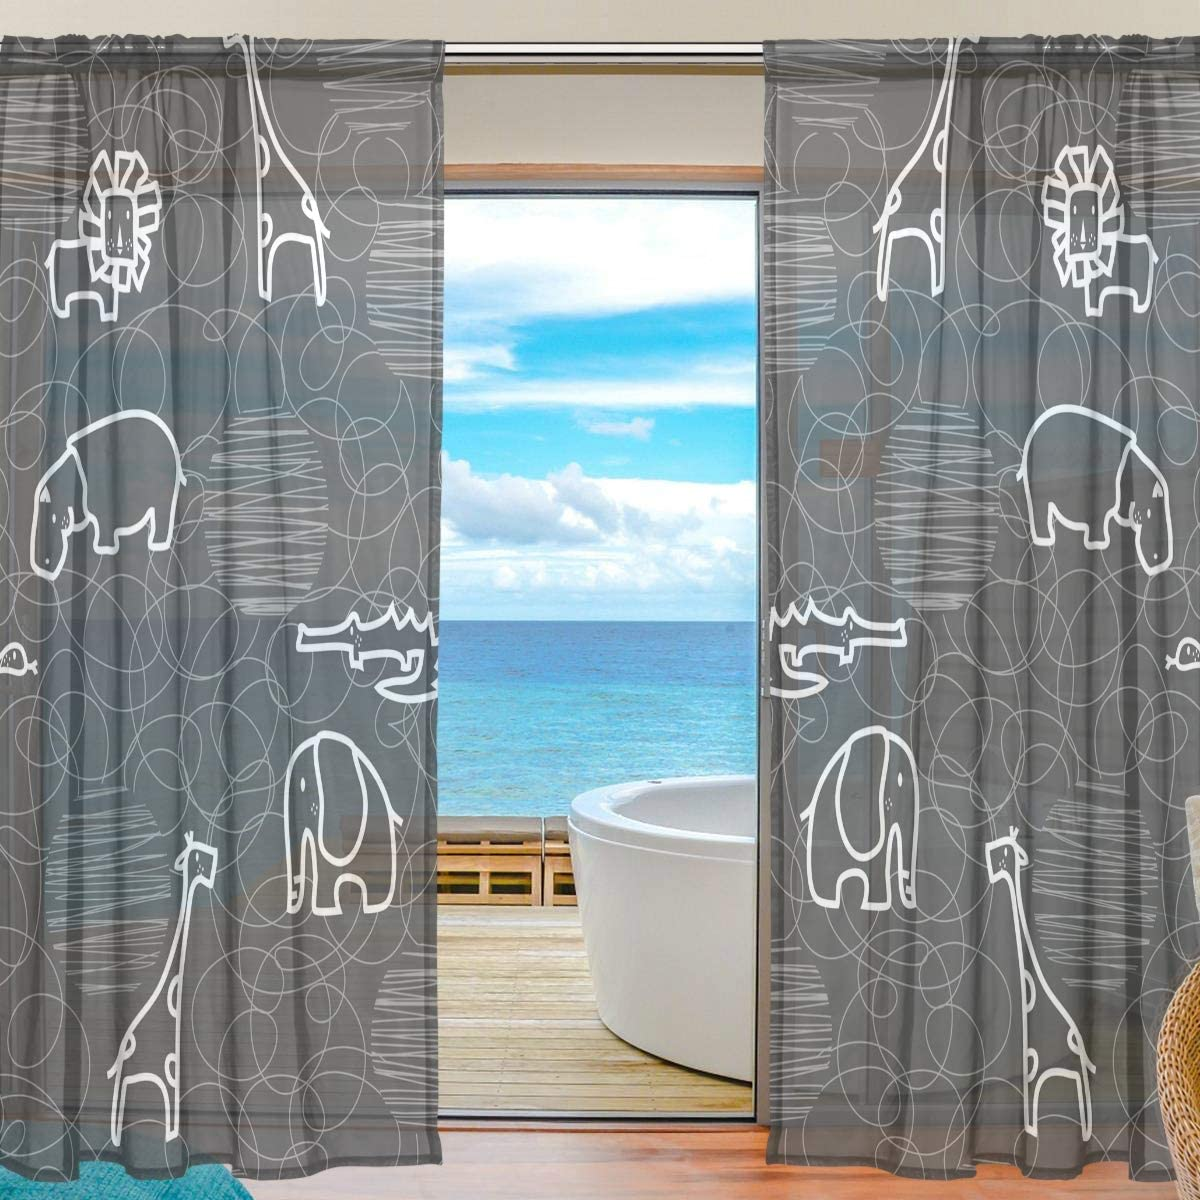 Amazon Com Mr Brilliant Elephant Giraffe Sheer Curtains For Bedroom Cute Animal Pattern Tulle Drapes Window Curtains For Kids Room Living Room 55x78 Inches 2060189 Kitchen Dining